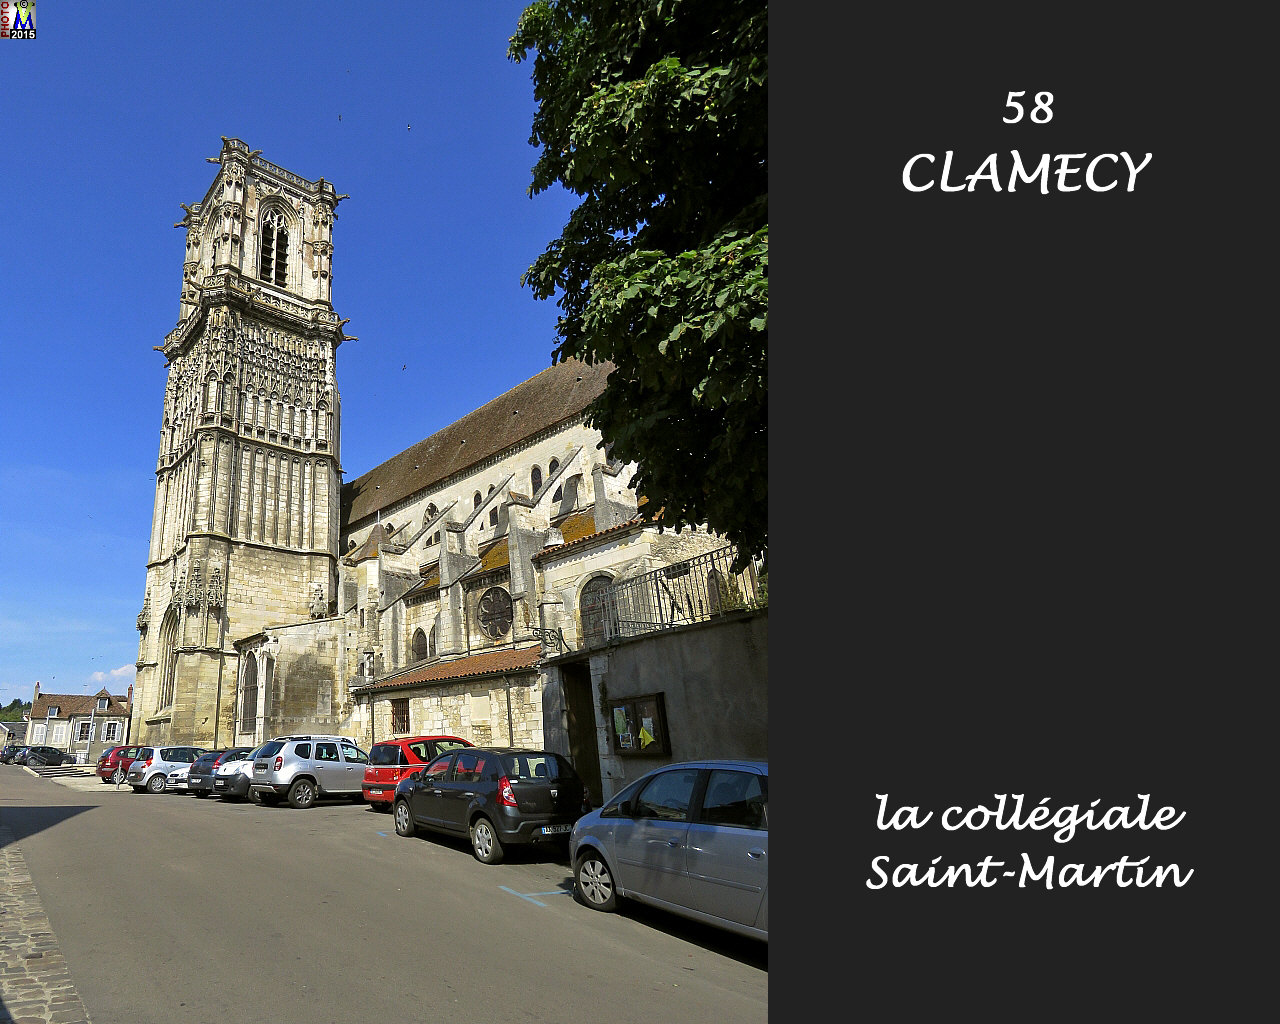 58CLAMECY-collegiale_106.jpg